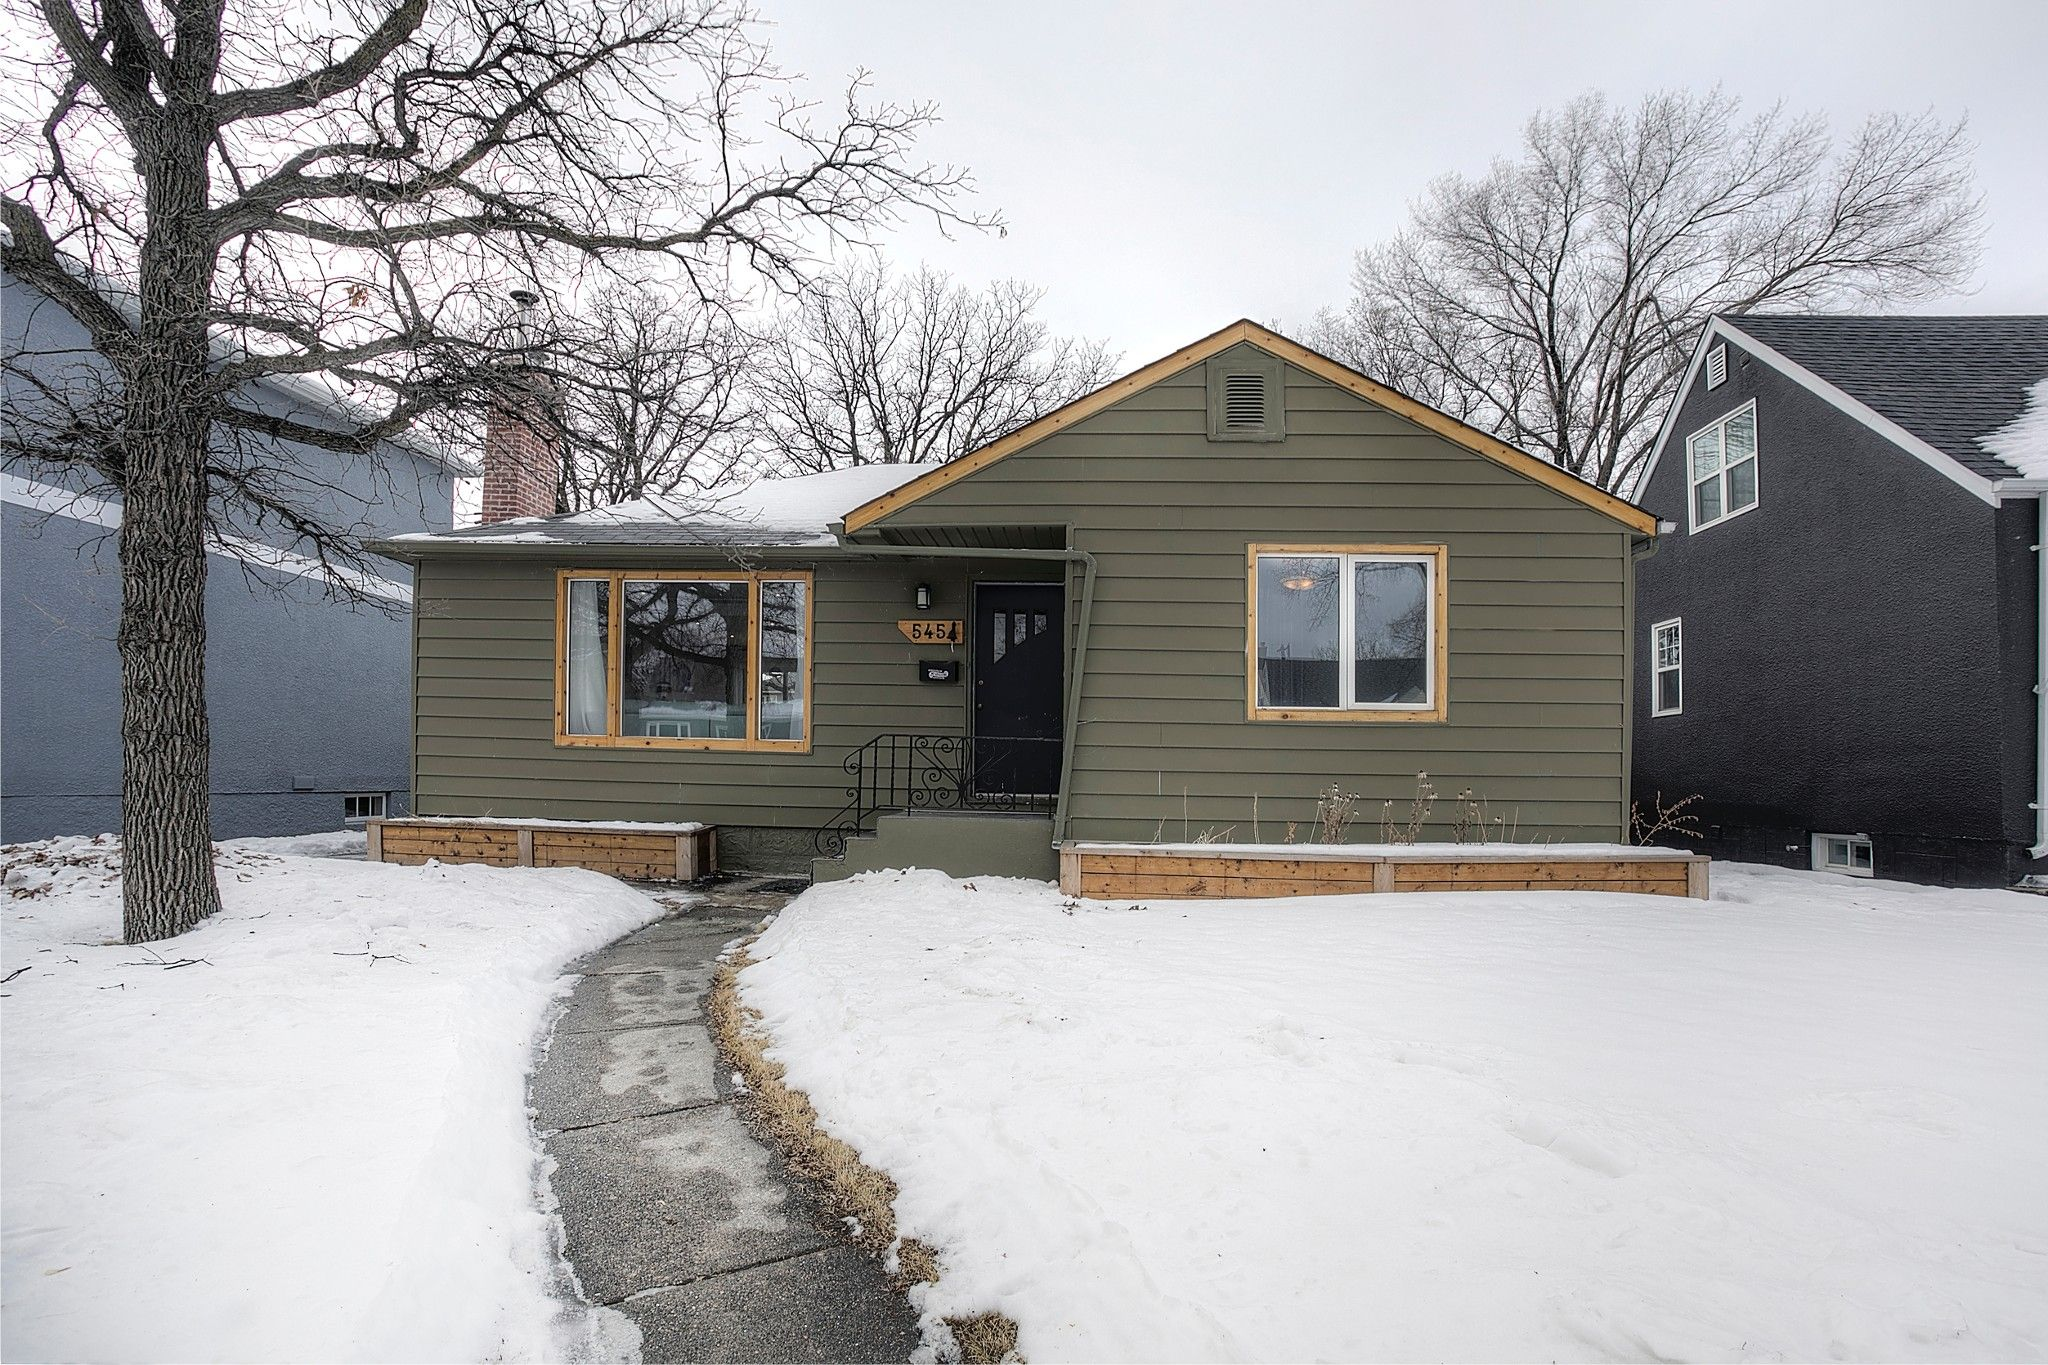 Main Photo: 545 Montrose Street in Winnipeg: River Heights South Single Family Detached for sale (1D)  : MLS®# 202103840